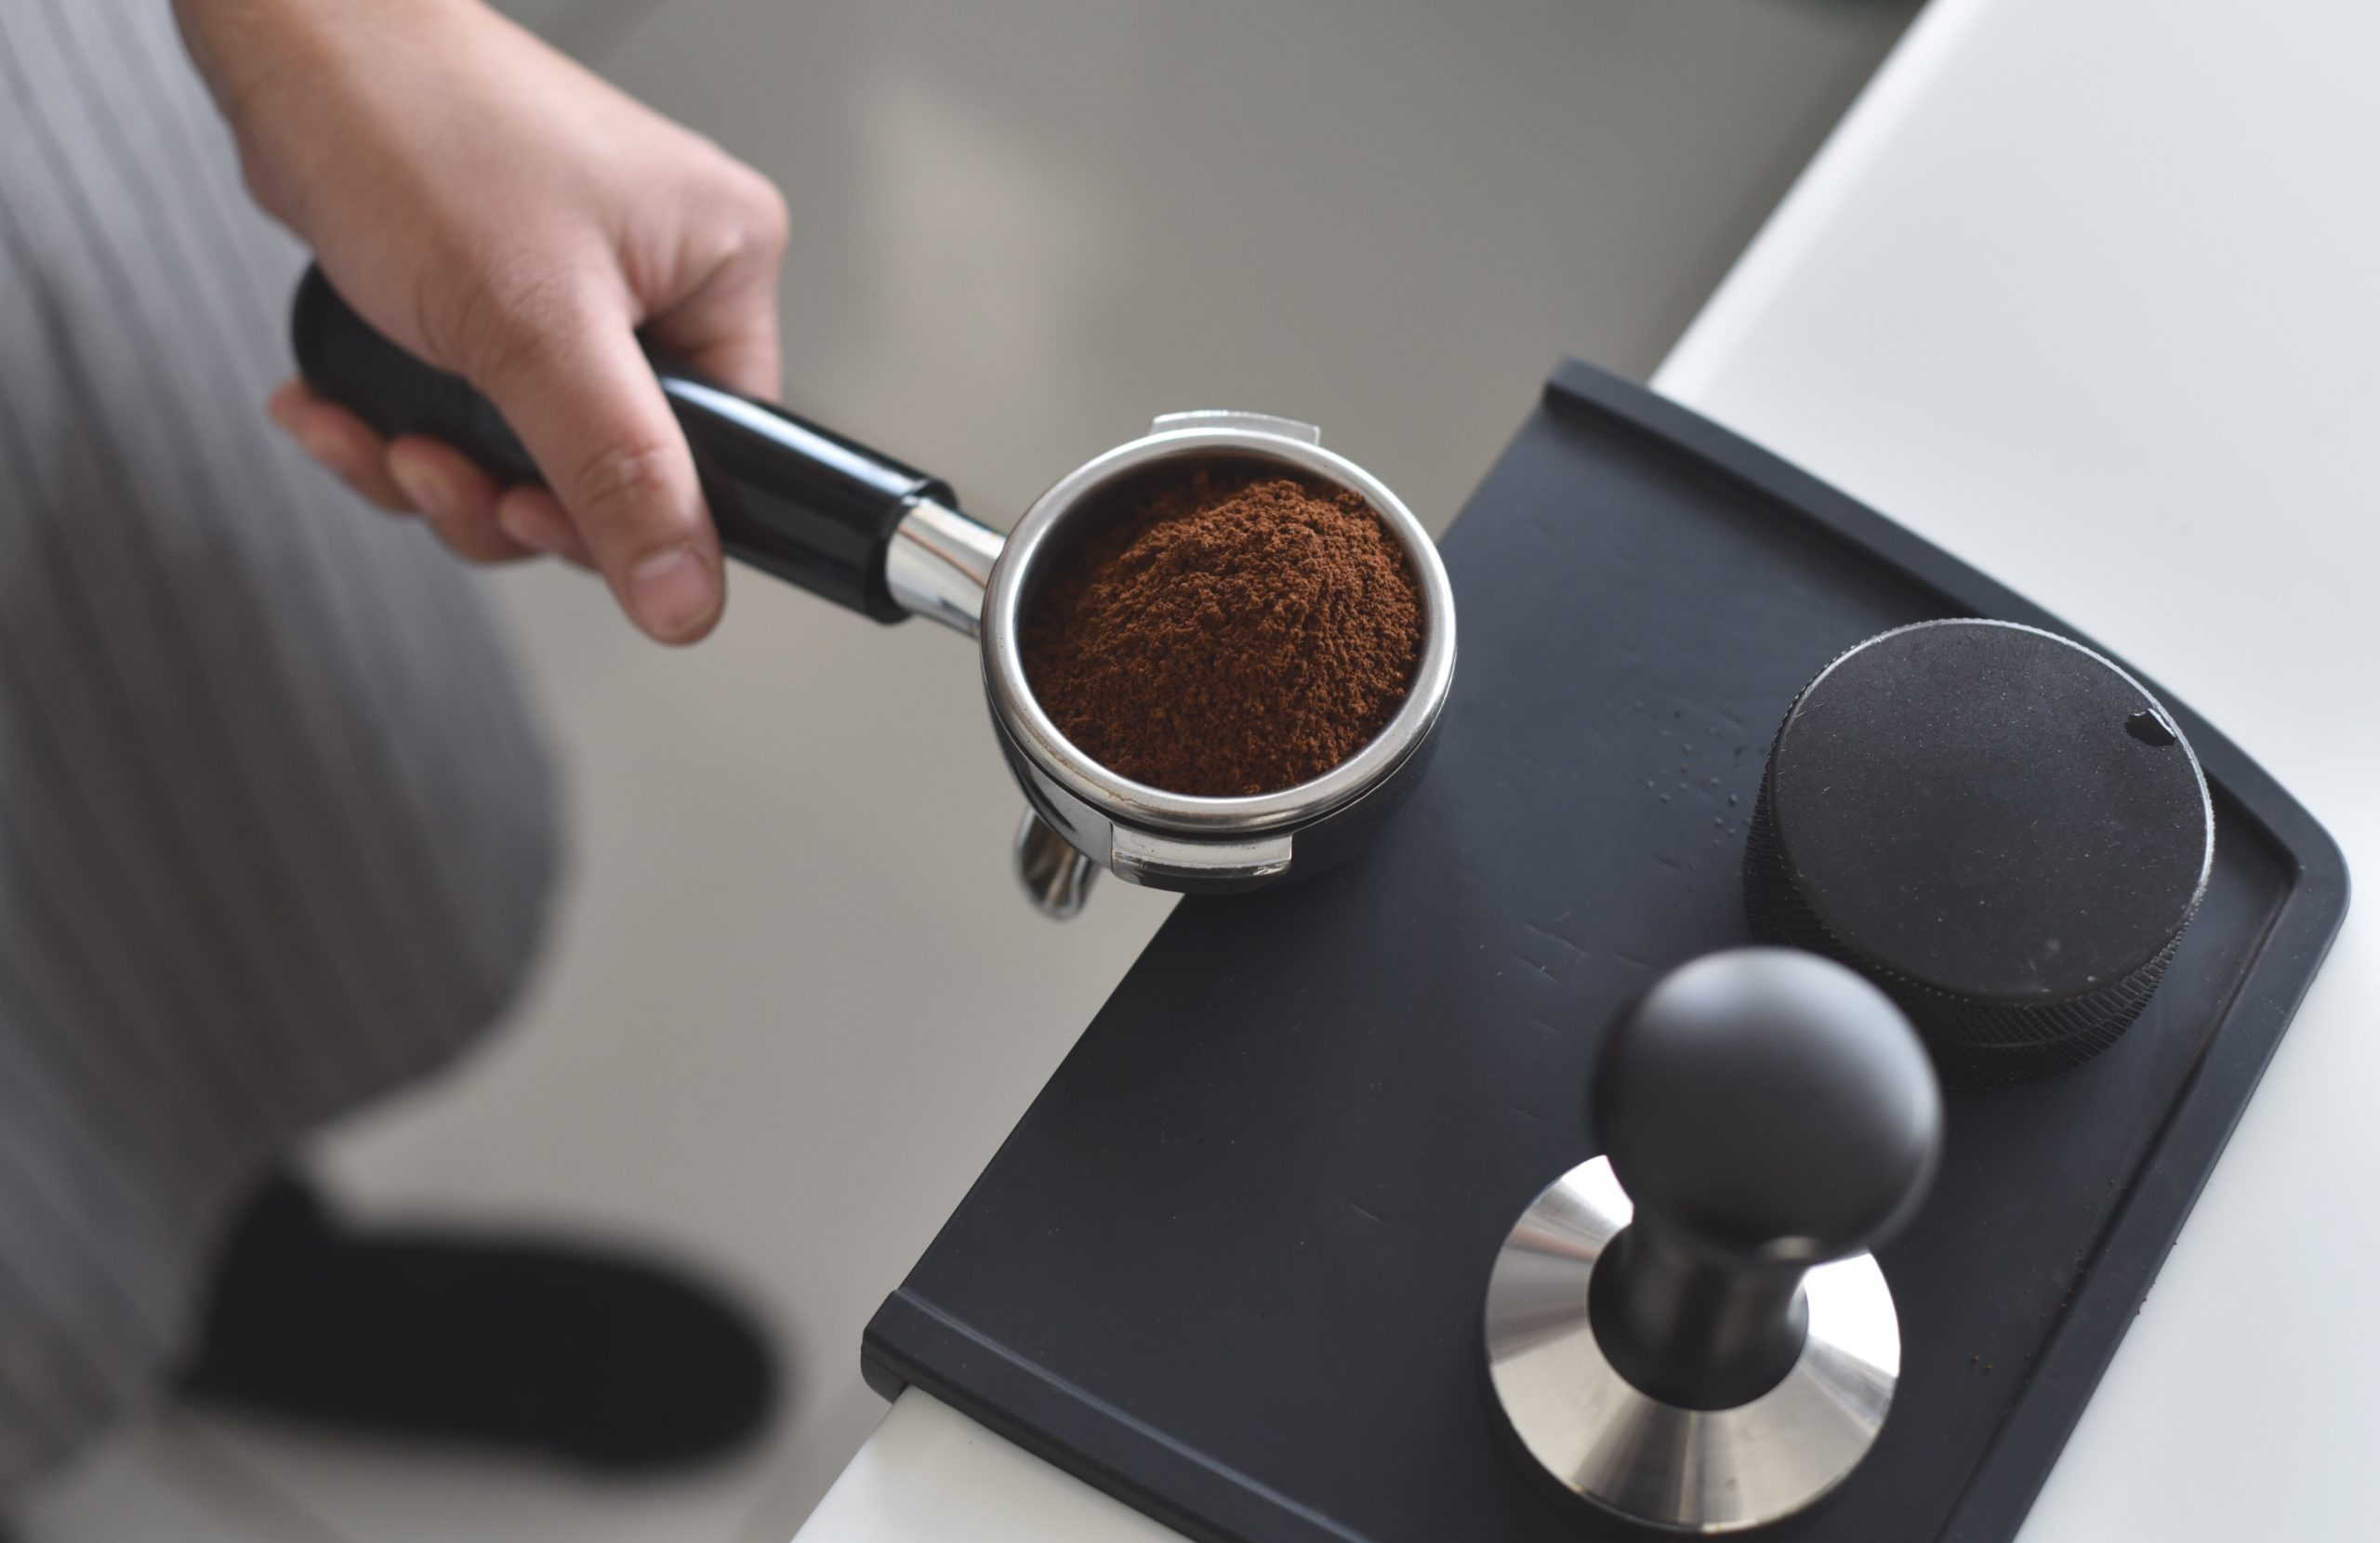 a person tamping coffee grounds